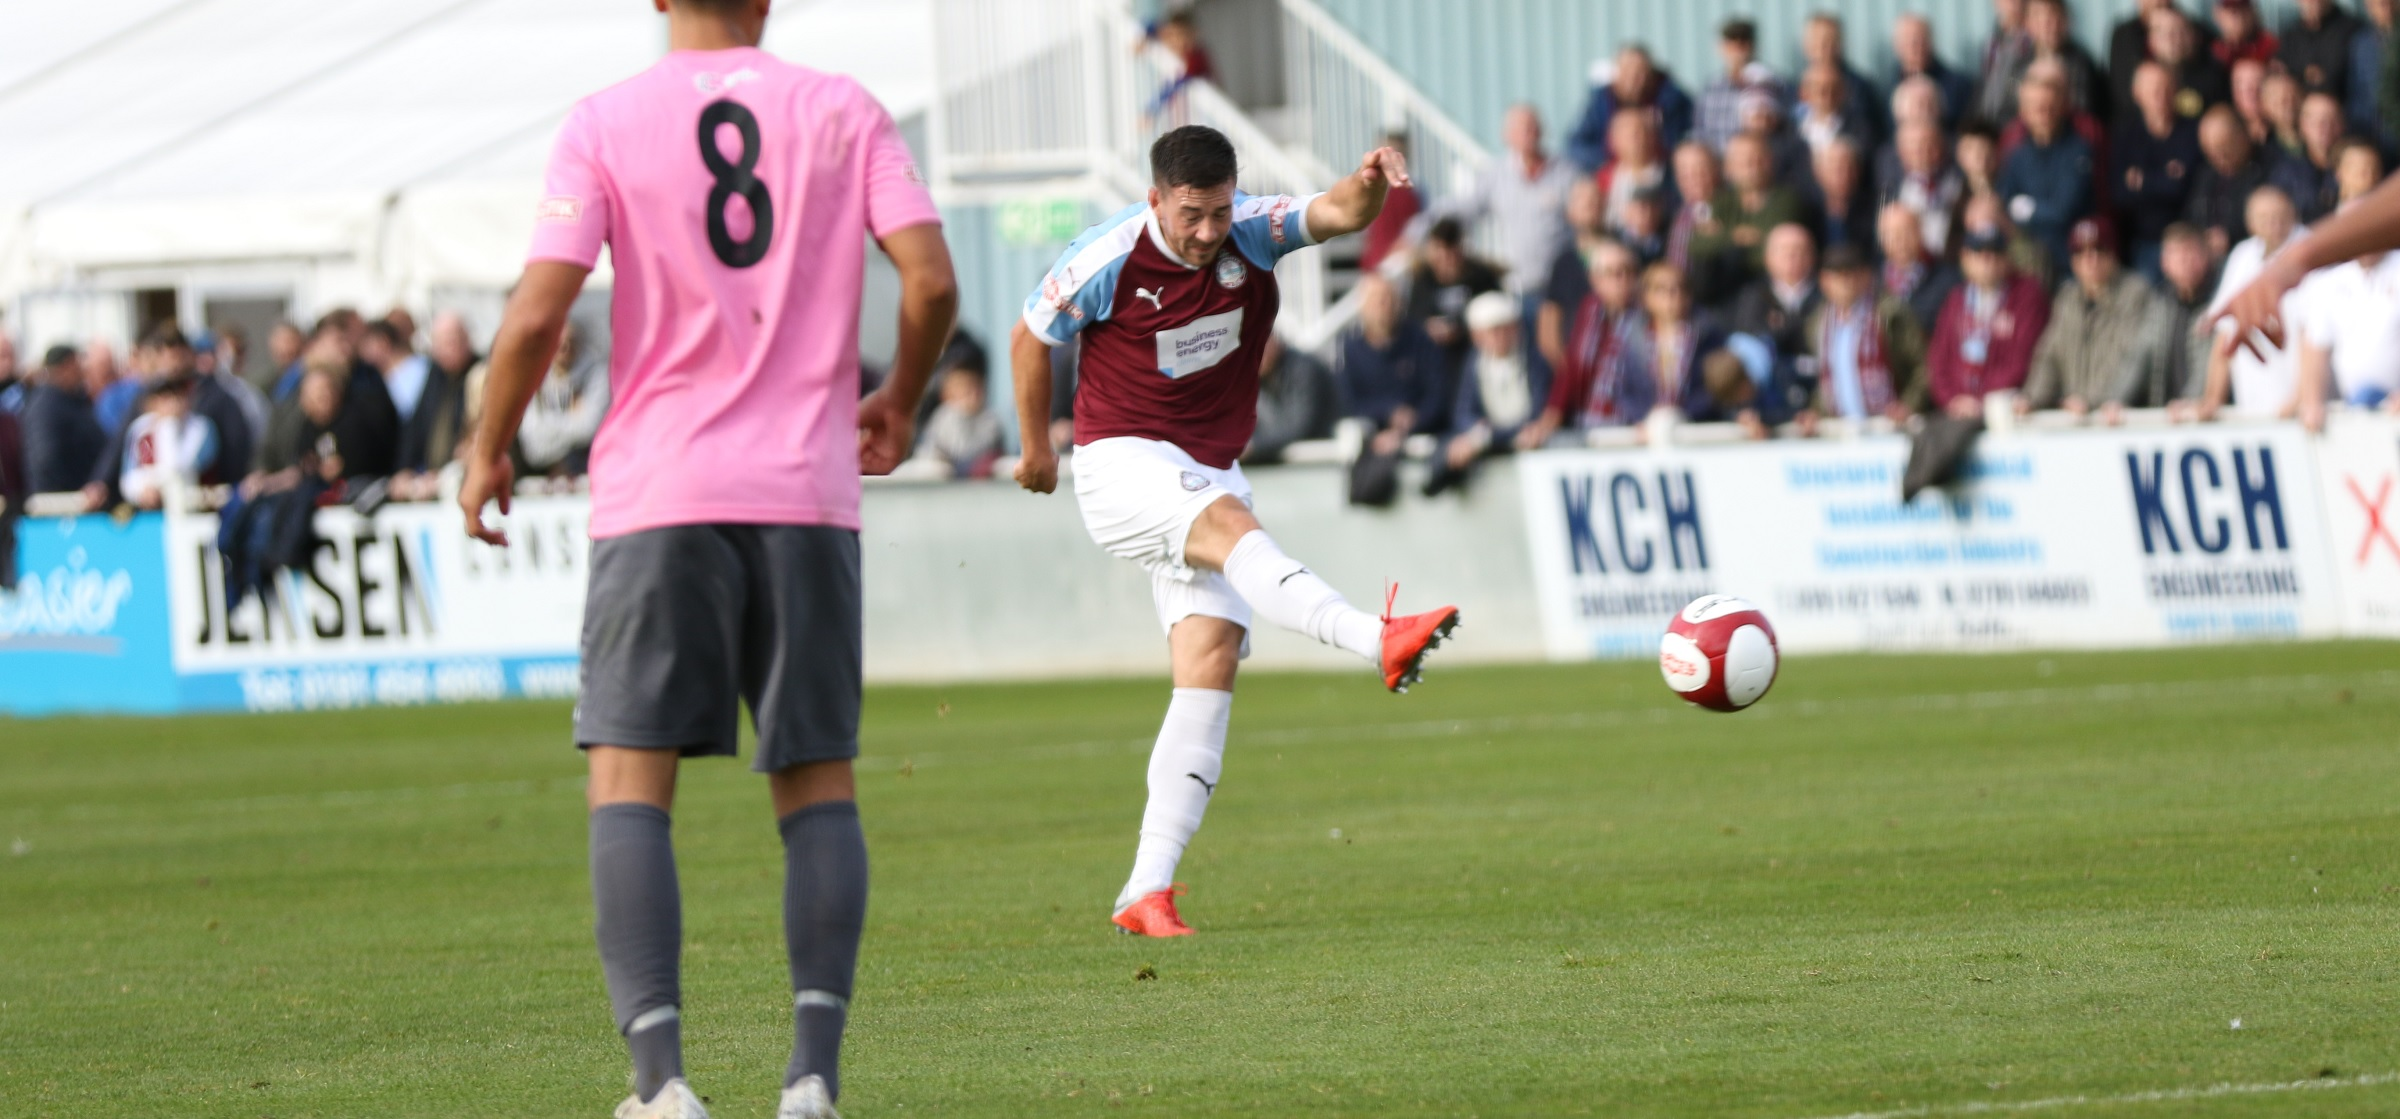 South Shields 5-0 Grantham Town: Mariners back to winning ways